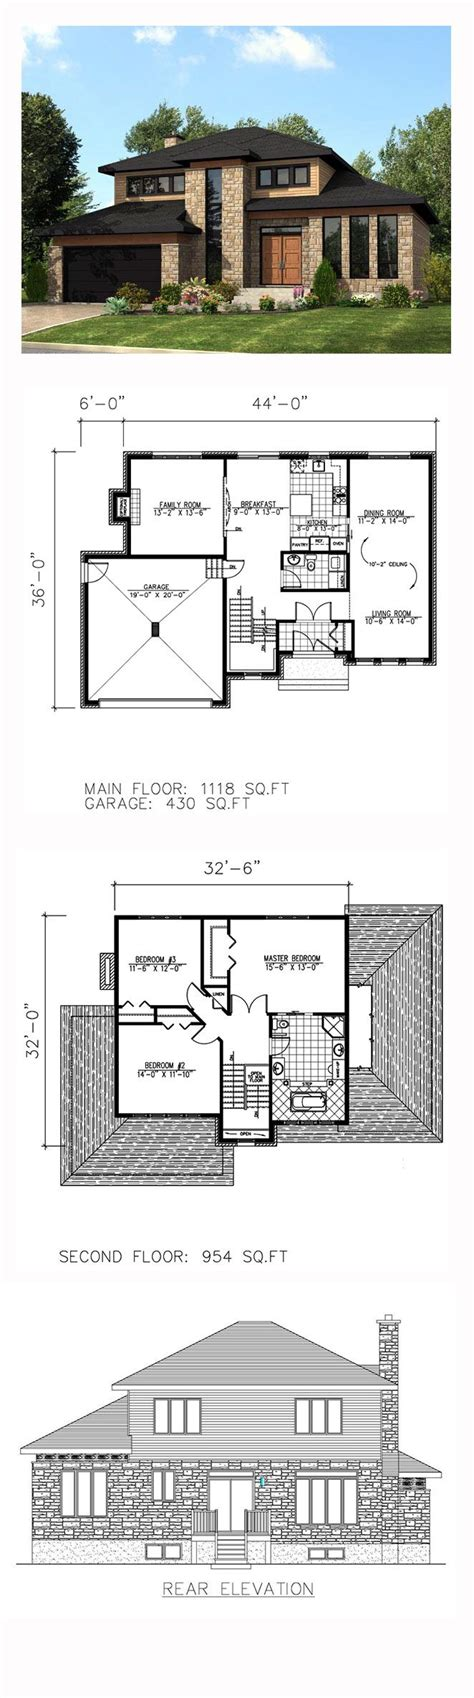 floor plan modern family house best 25 modern house plans ideas on pinterest modern floor plans modern house floor plans